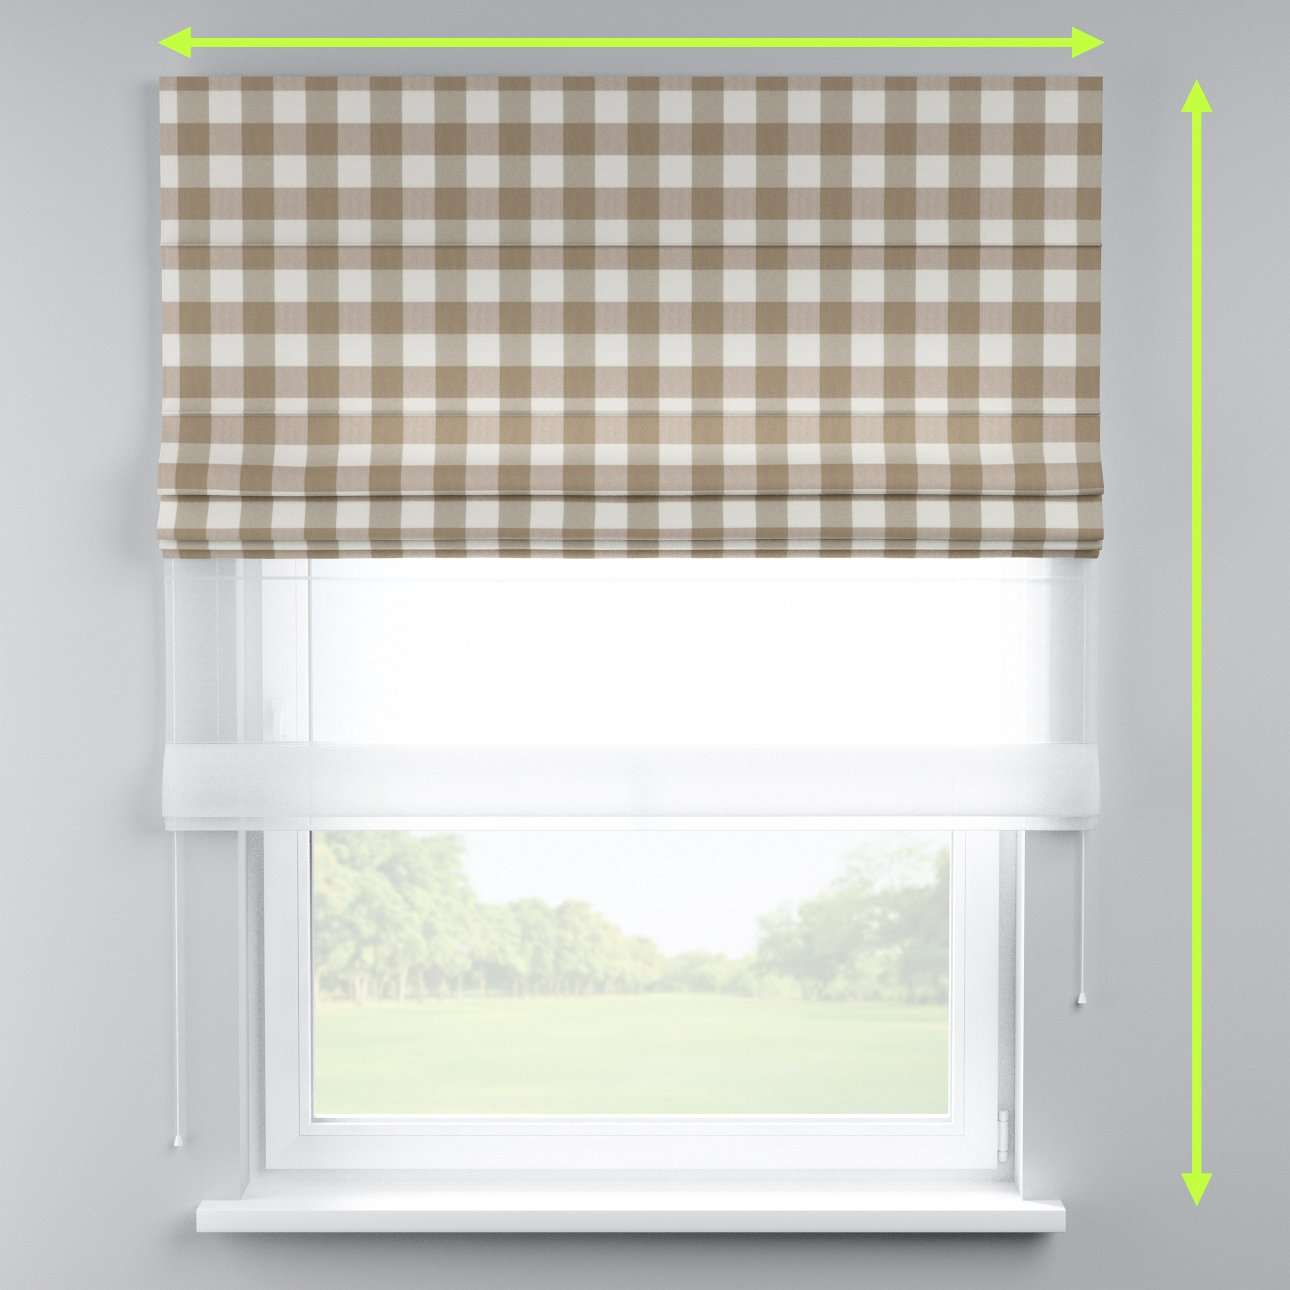 Voile and fabric roman blind (DUO II) in collection Quadro, fabric: 136-08